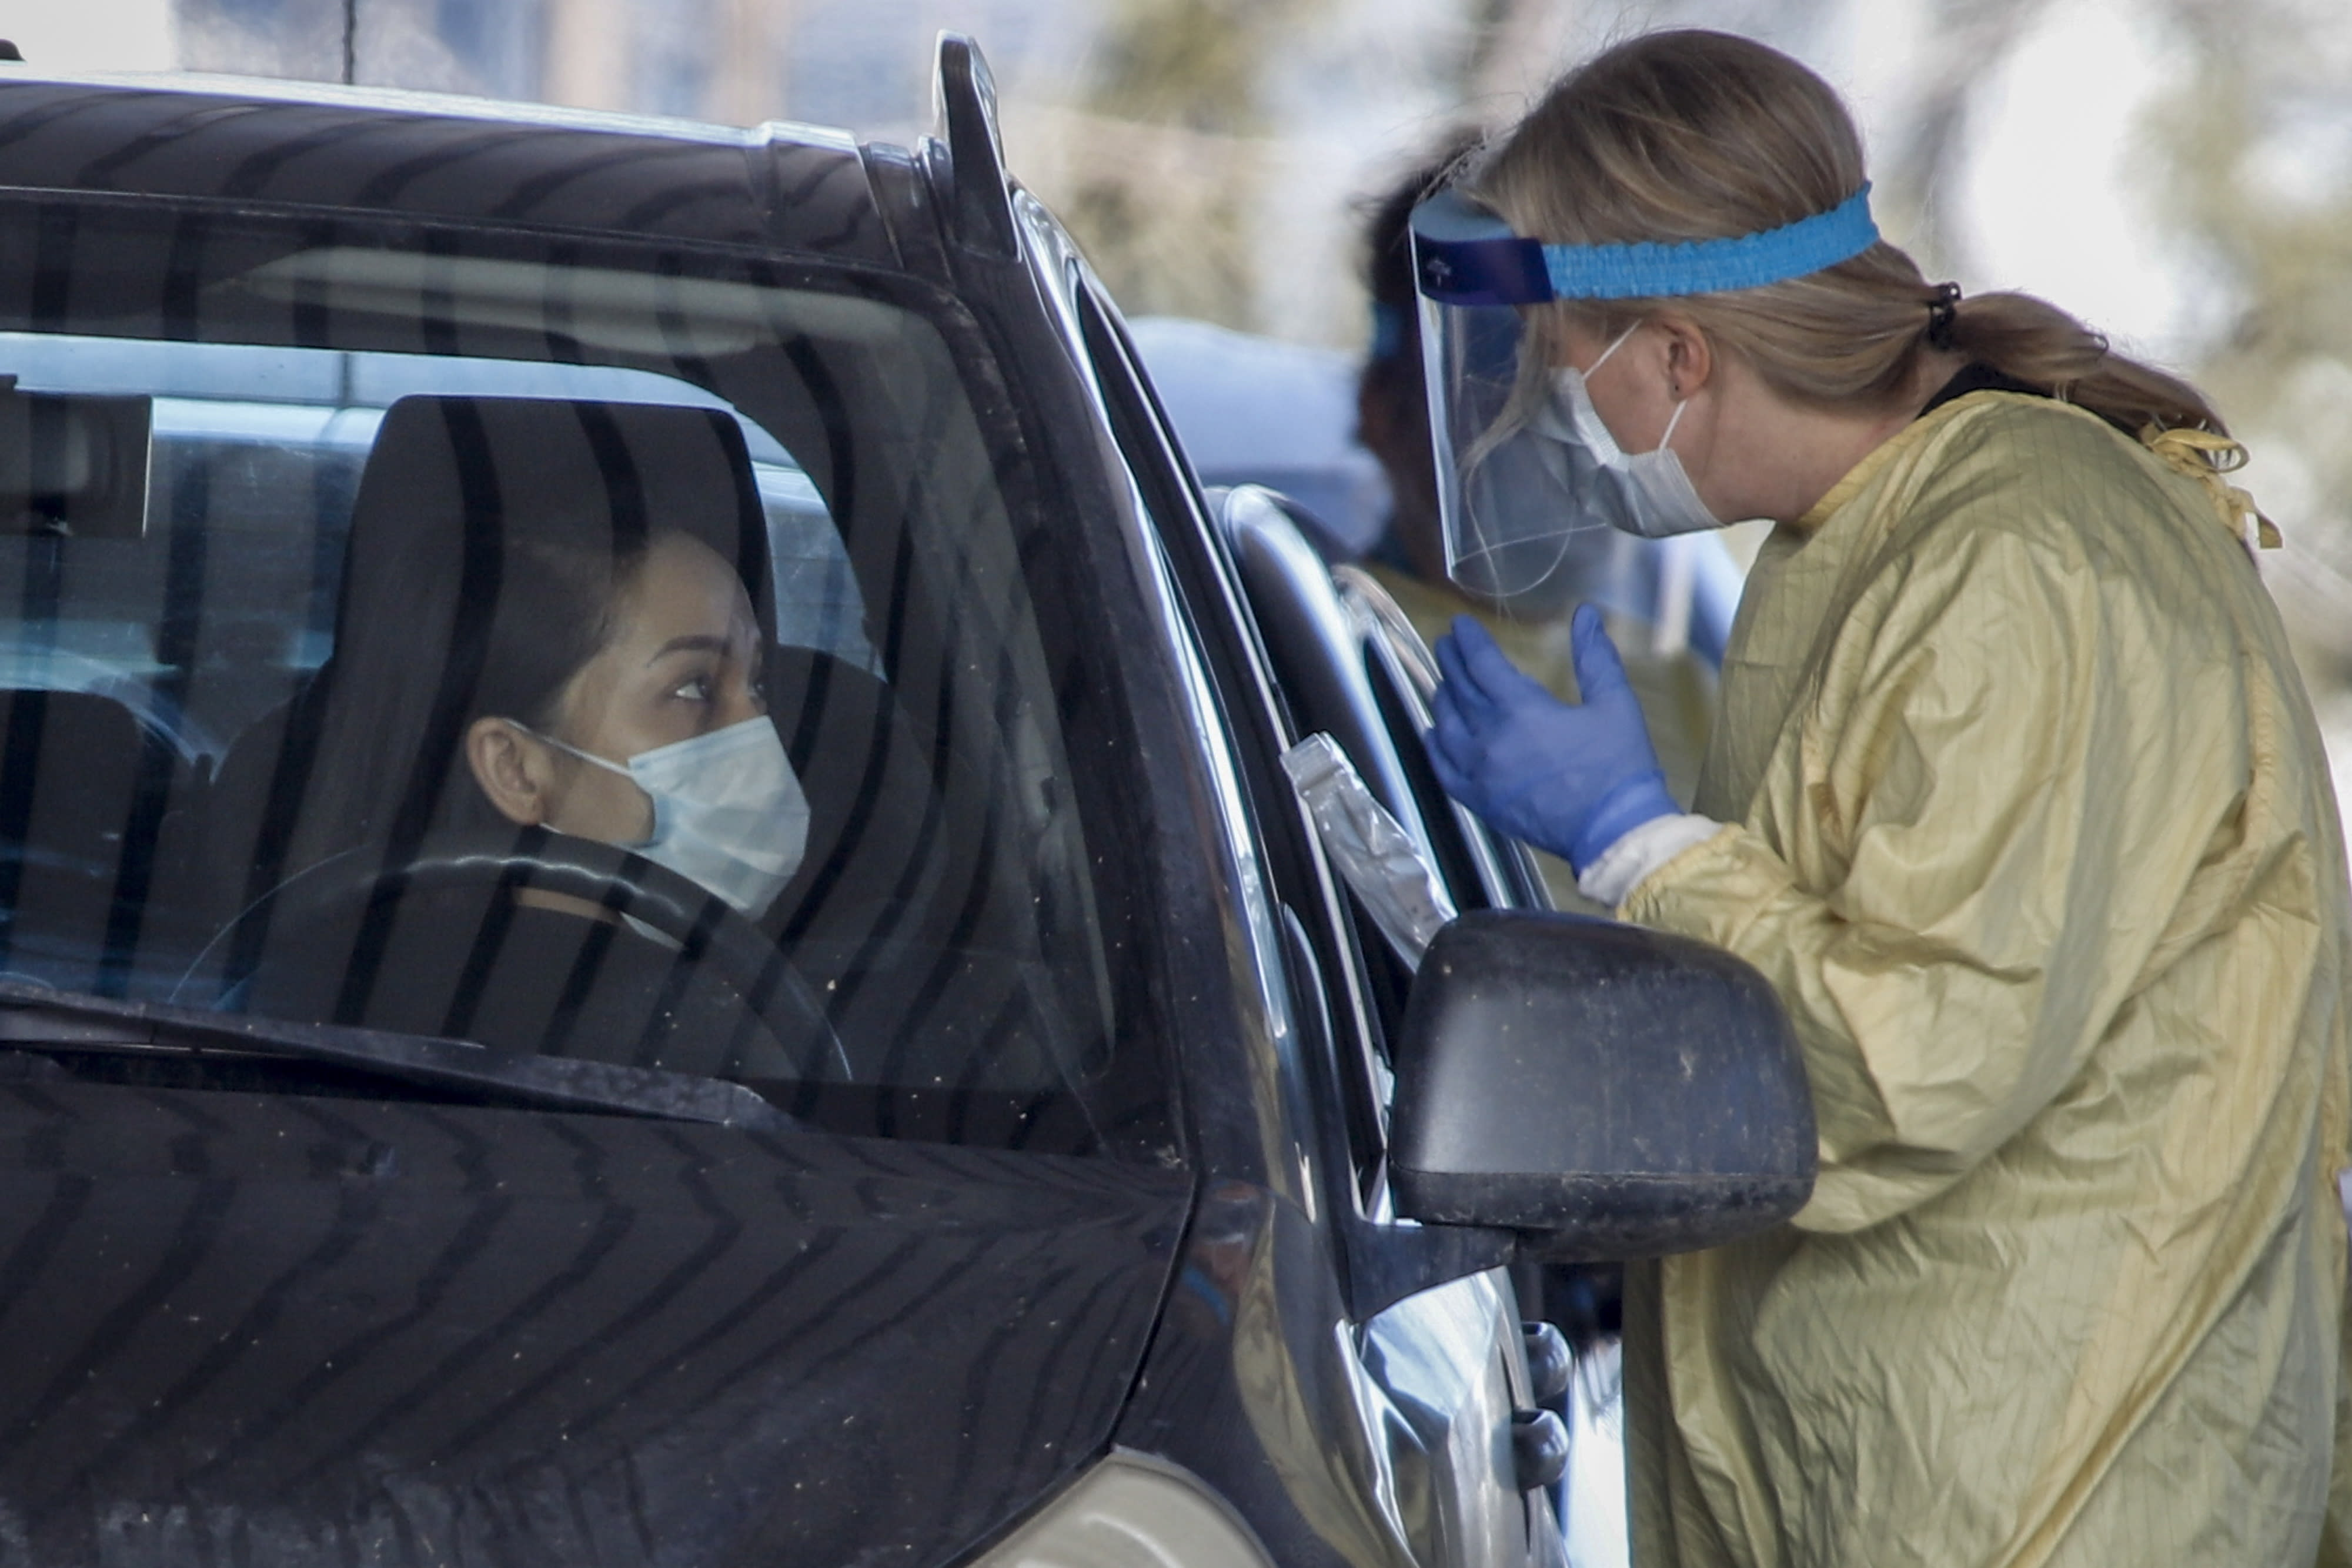 An Alberta Health Services employee speaks with a motorist at a drive-thru coronavirus testing facility in Calgary, Alberta, Friday, March 27, 2020. (Jeff McIntosh/The Canadian Press via AP)